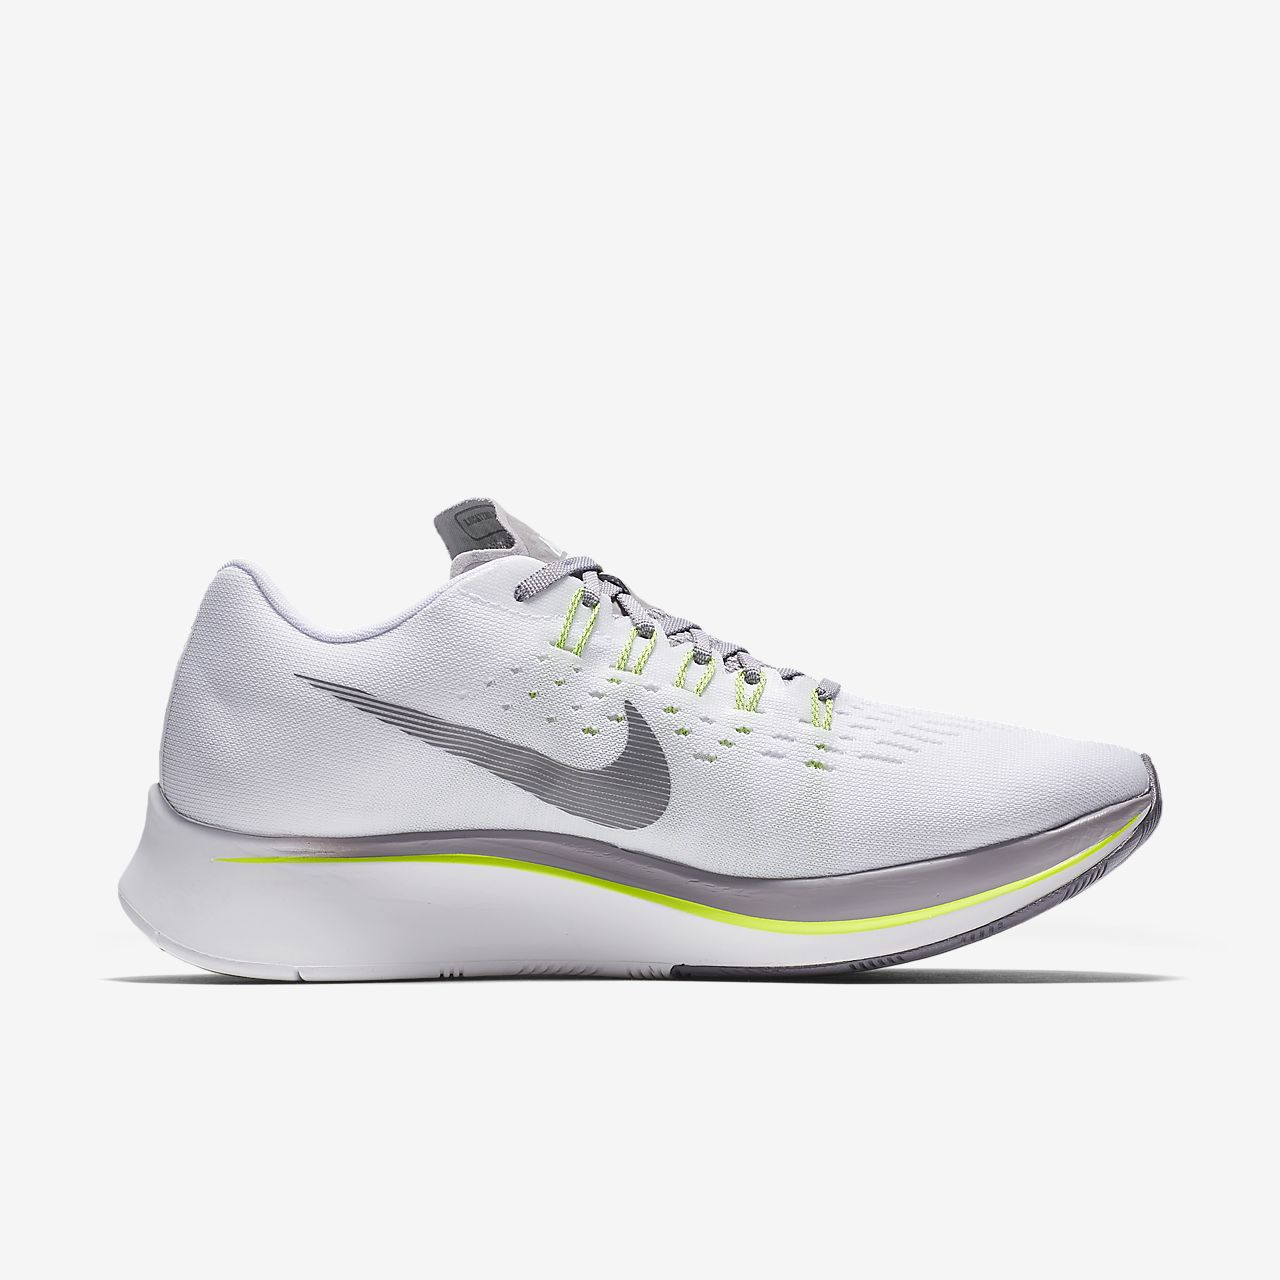 0c564fb3049a Nike Zoom Fly Men s Running Shoe. Nike.com